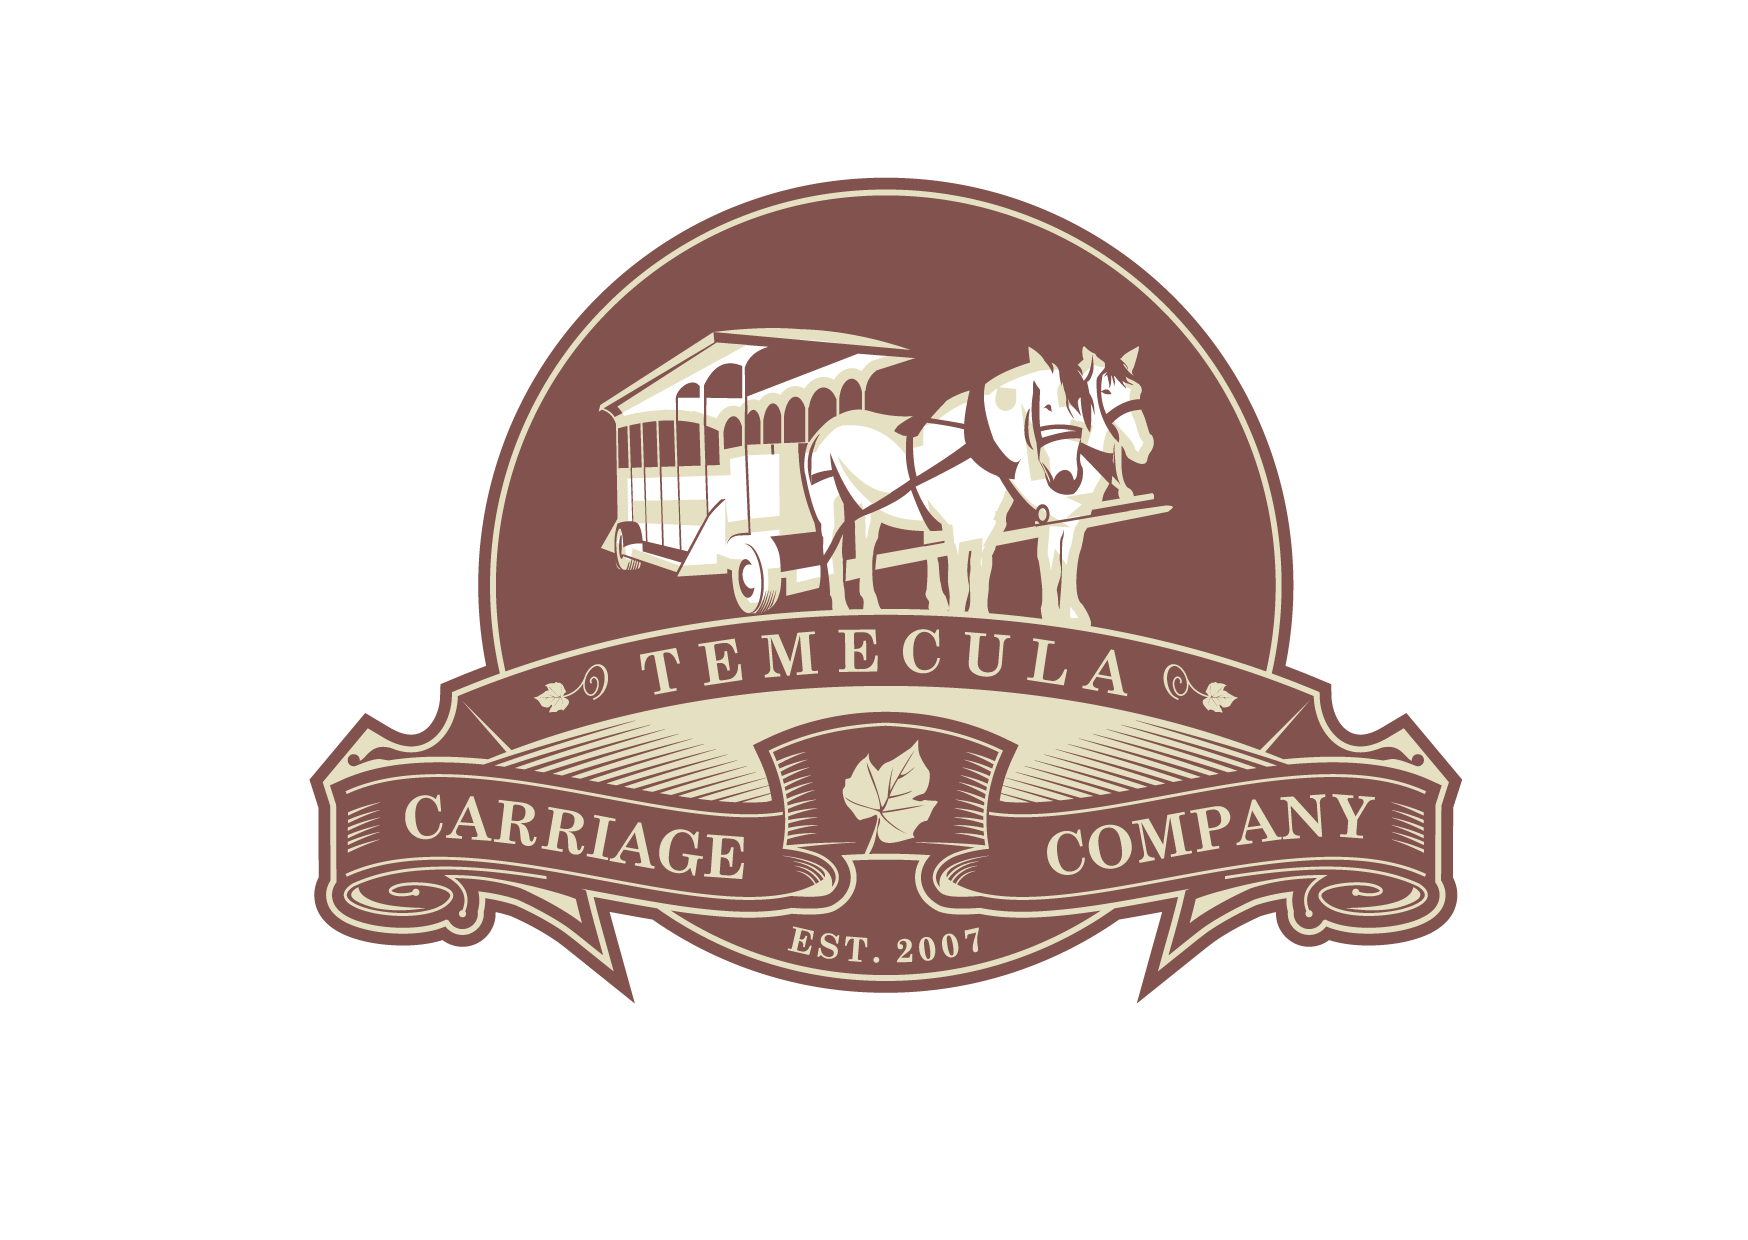 Temecula carriage co